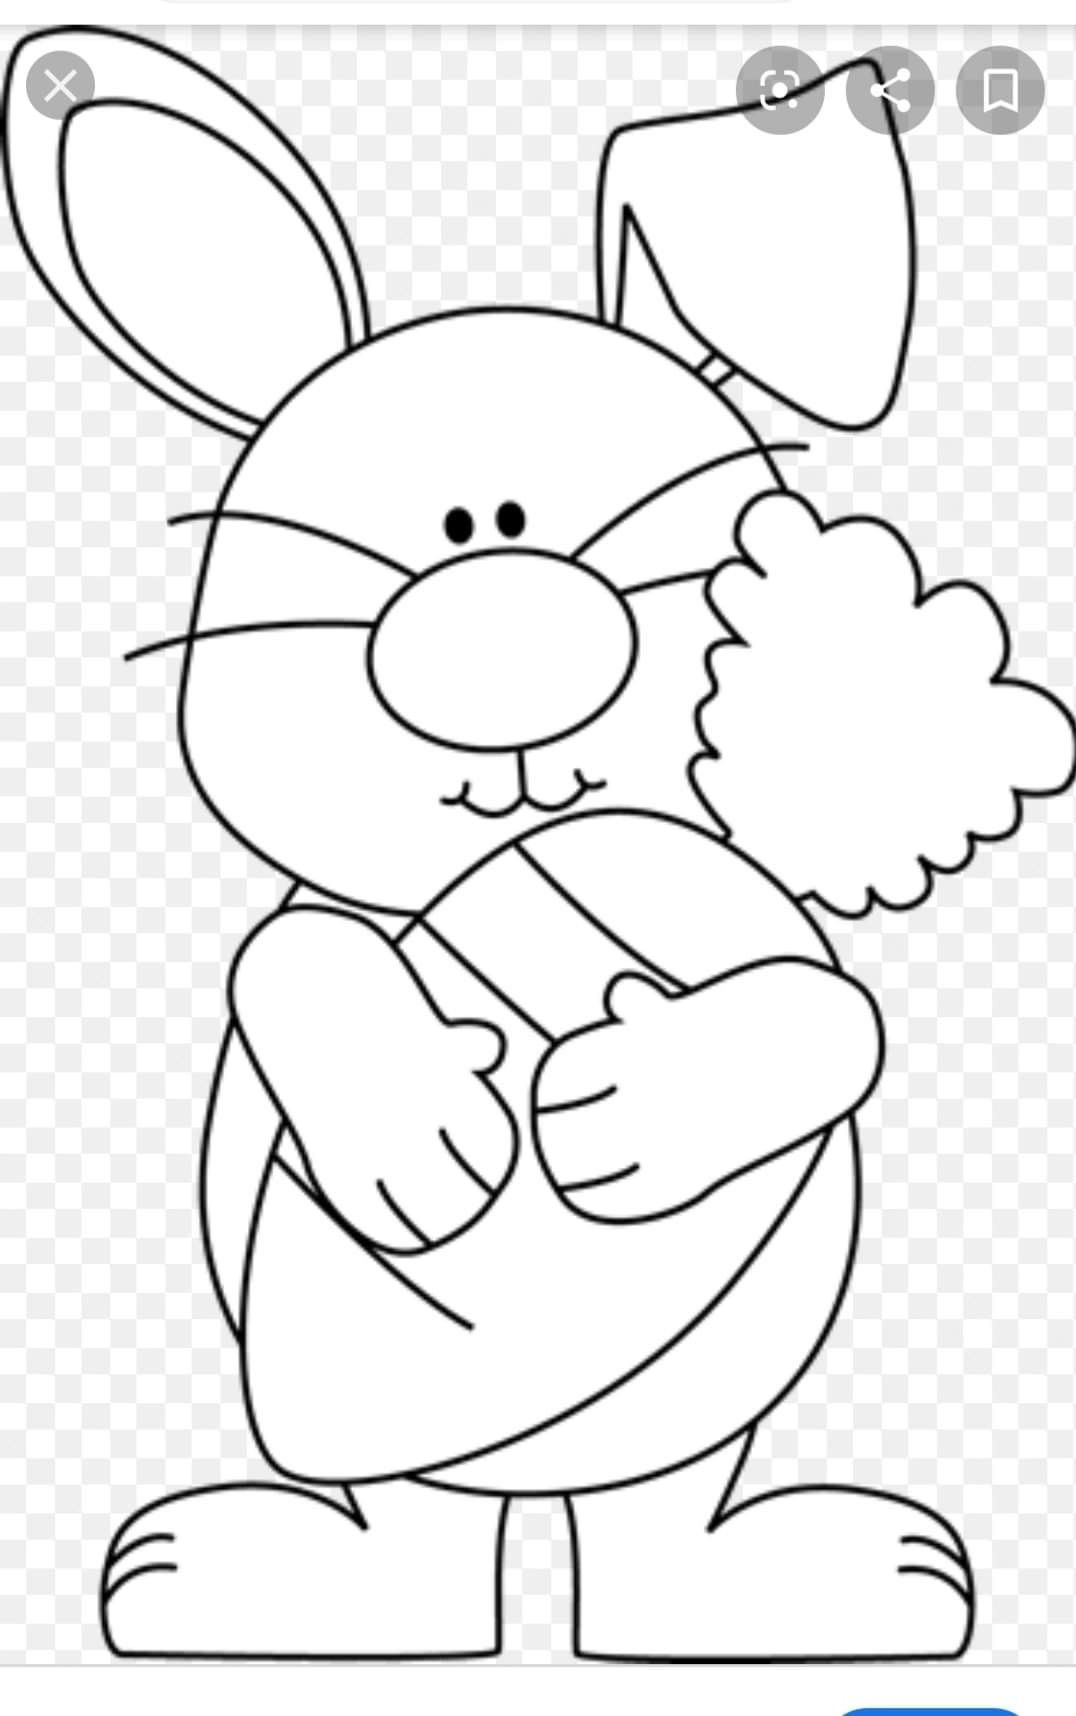 Pin By Orly Yosevzon On Patterns Bunny Coloring Pages Easter Bunny Colouring Easter Coloring Sheets